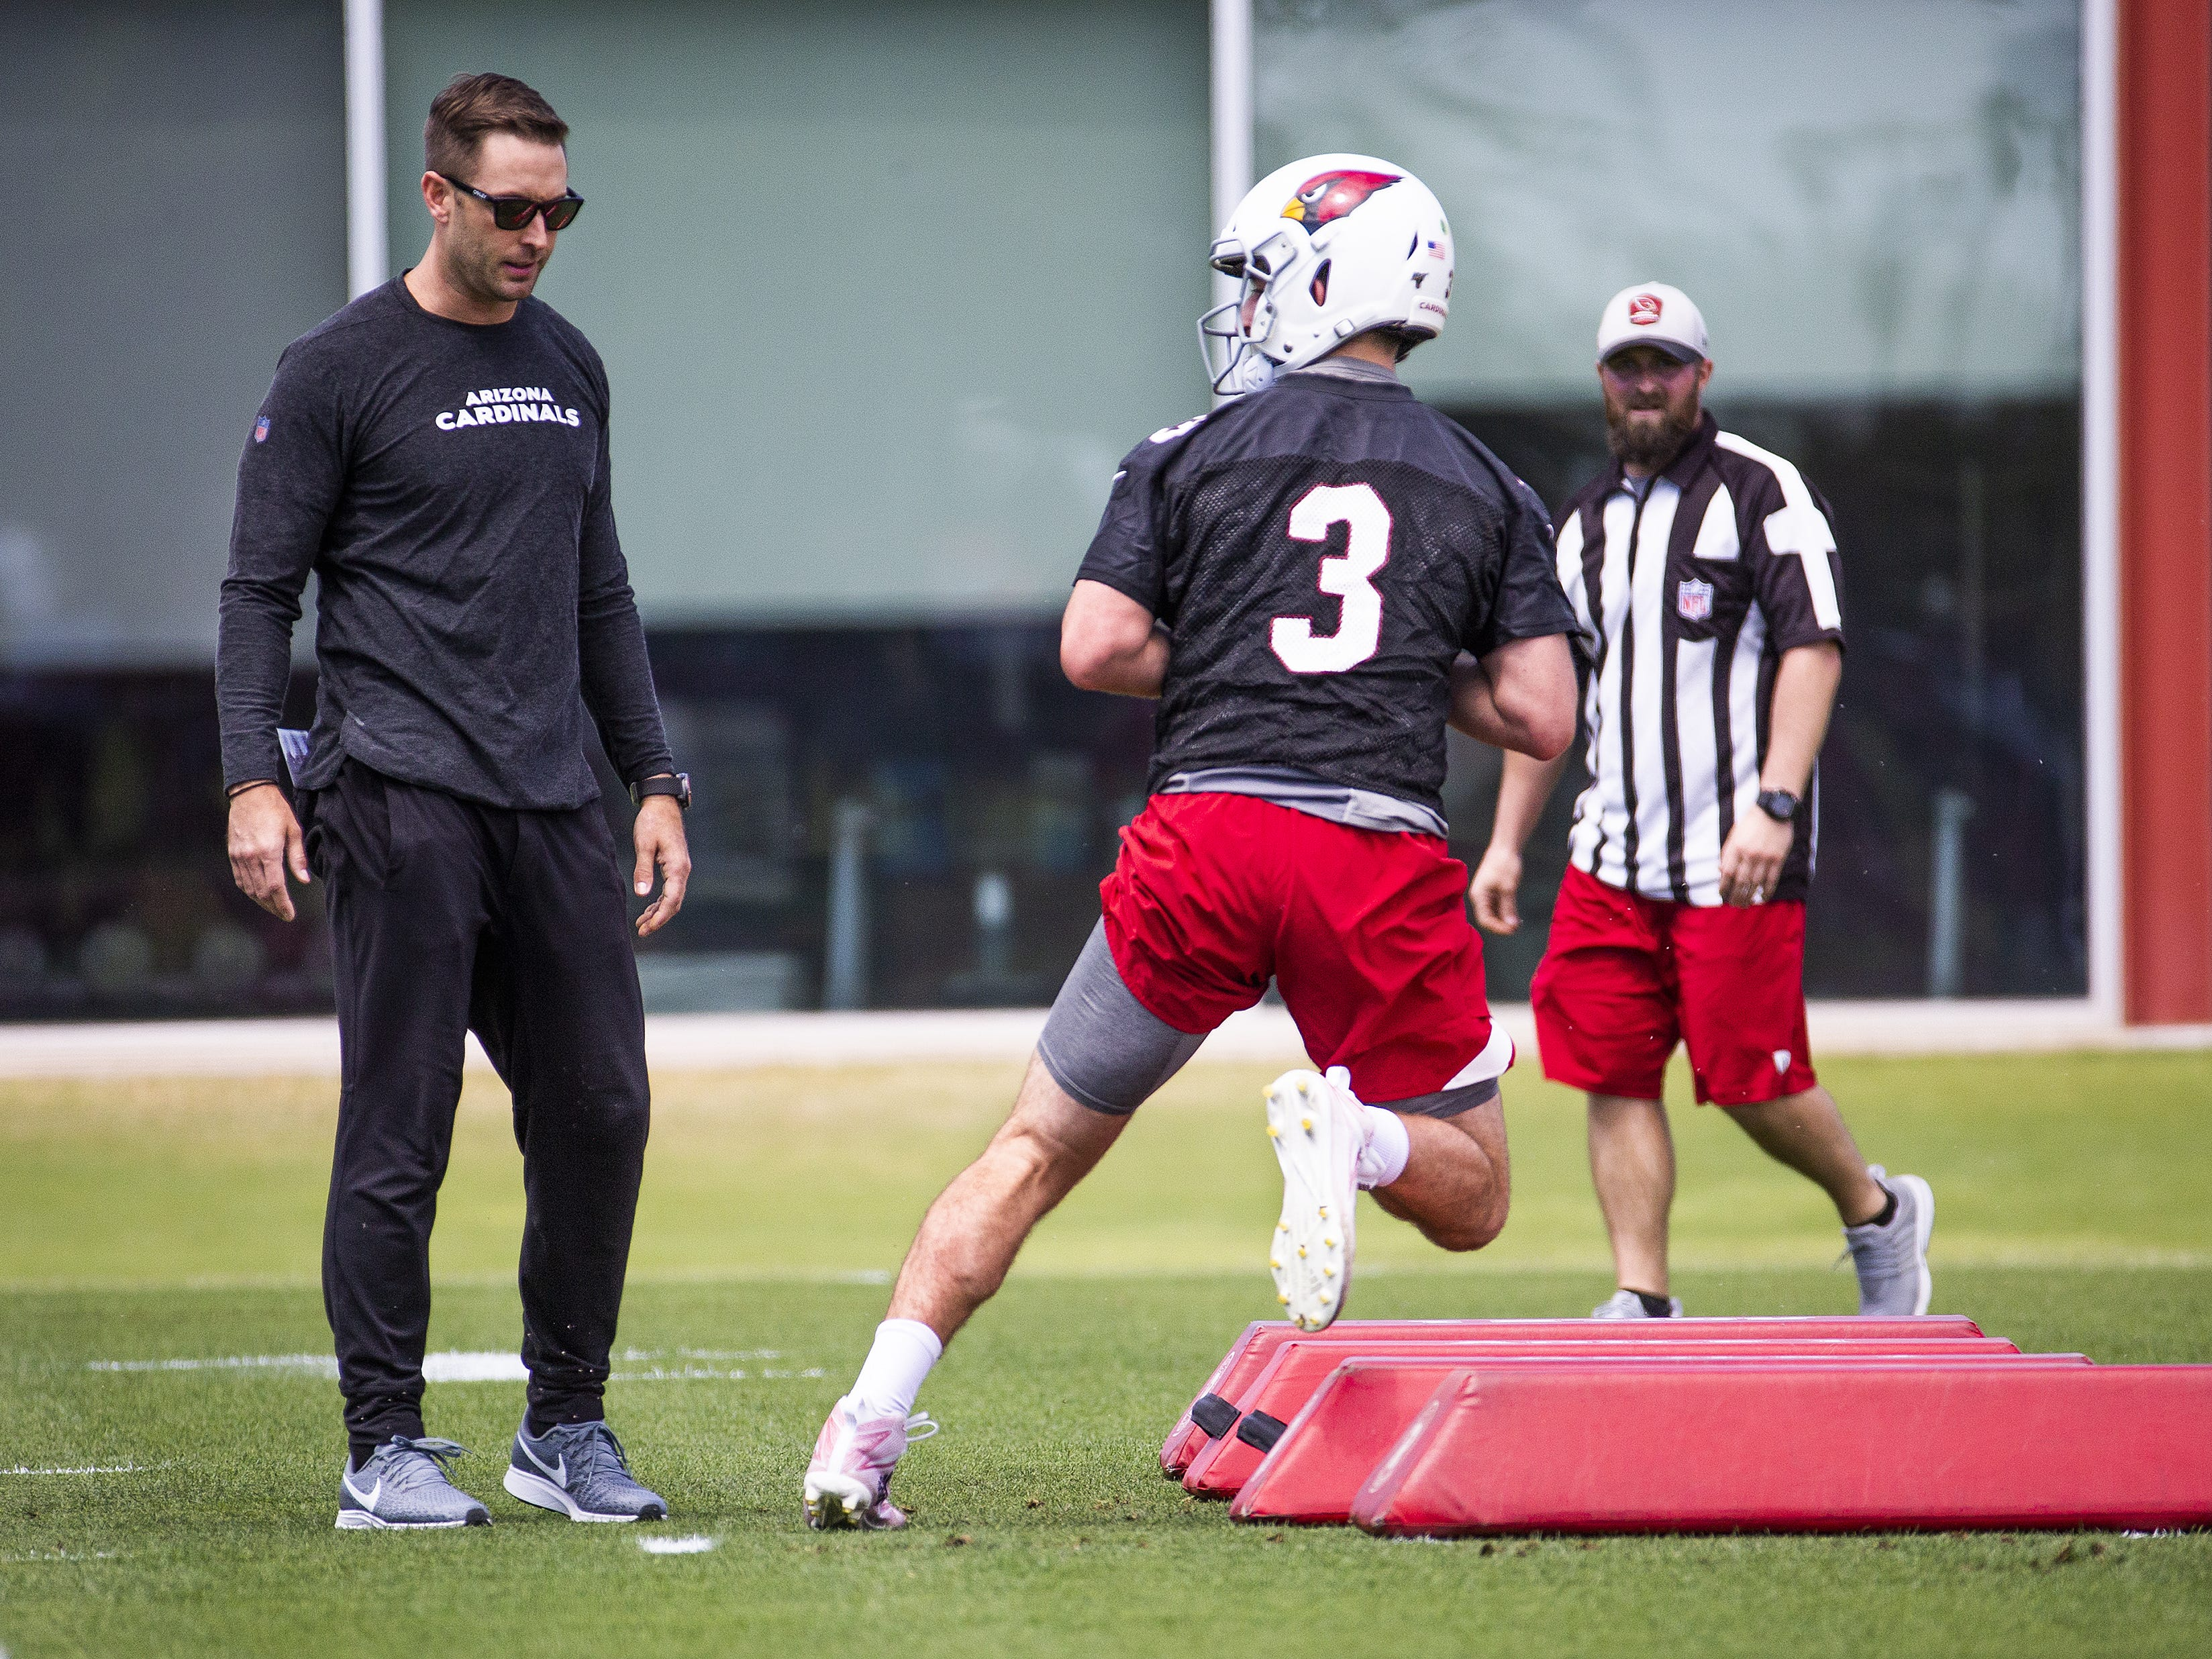 Arizona Cardinals head coach Kliff Kingsbury analyzes quarterback Josh Rosen during the first day of voluntary mini camp at the Tempe training facility, Tuesday, April 23, 2019.